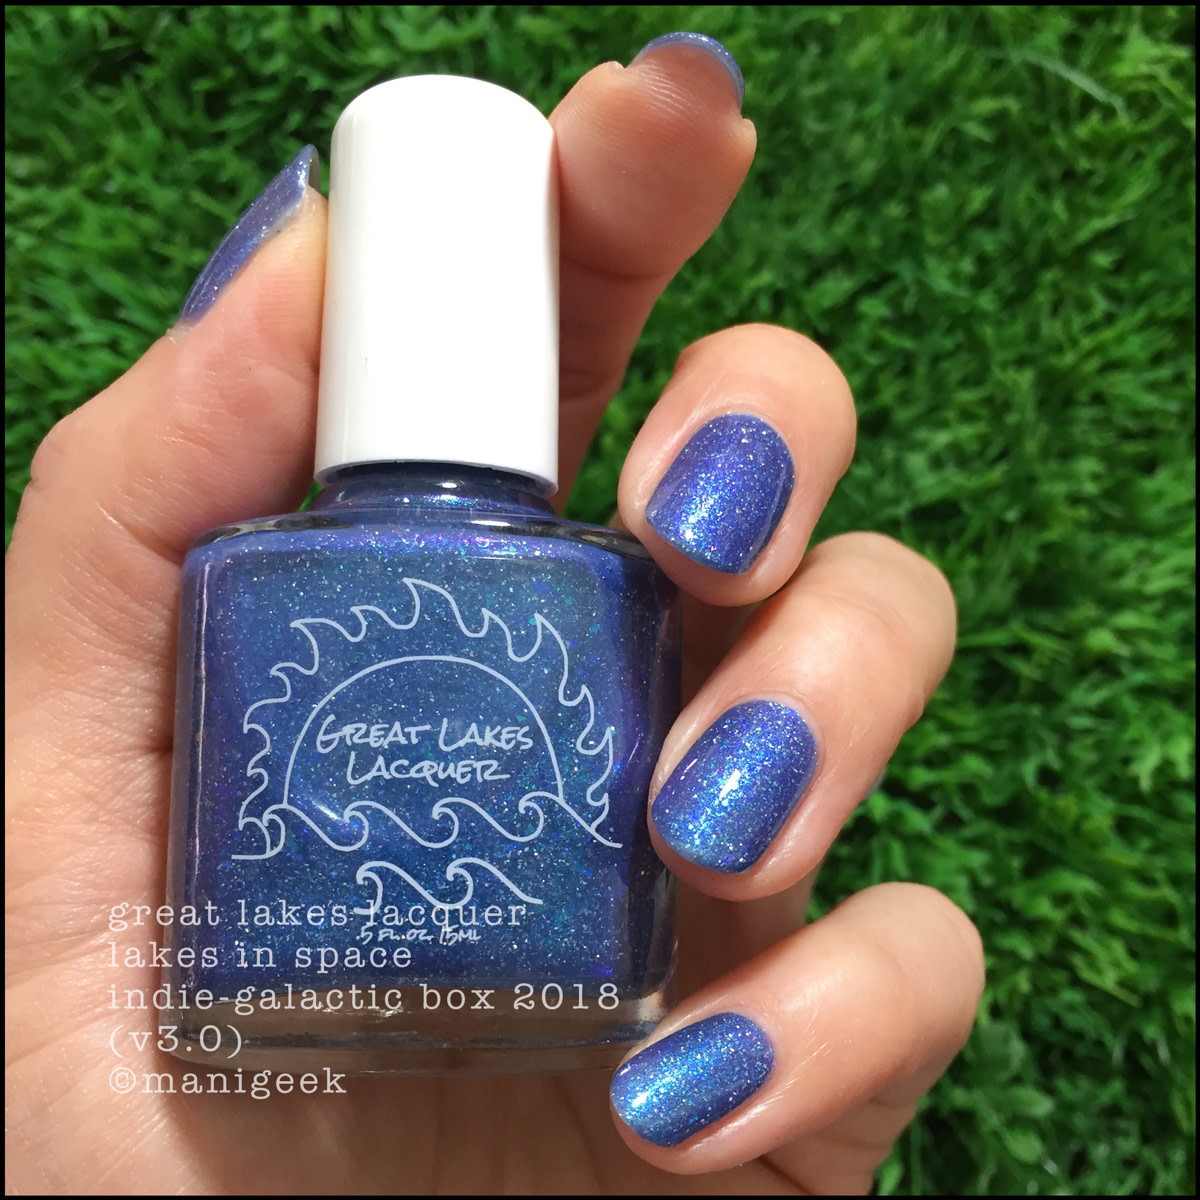 Great Lakes Lacquer Lakes in Space 2 - Indie Galactic Box 3 2018